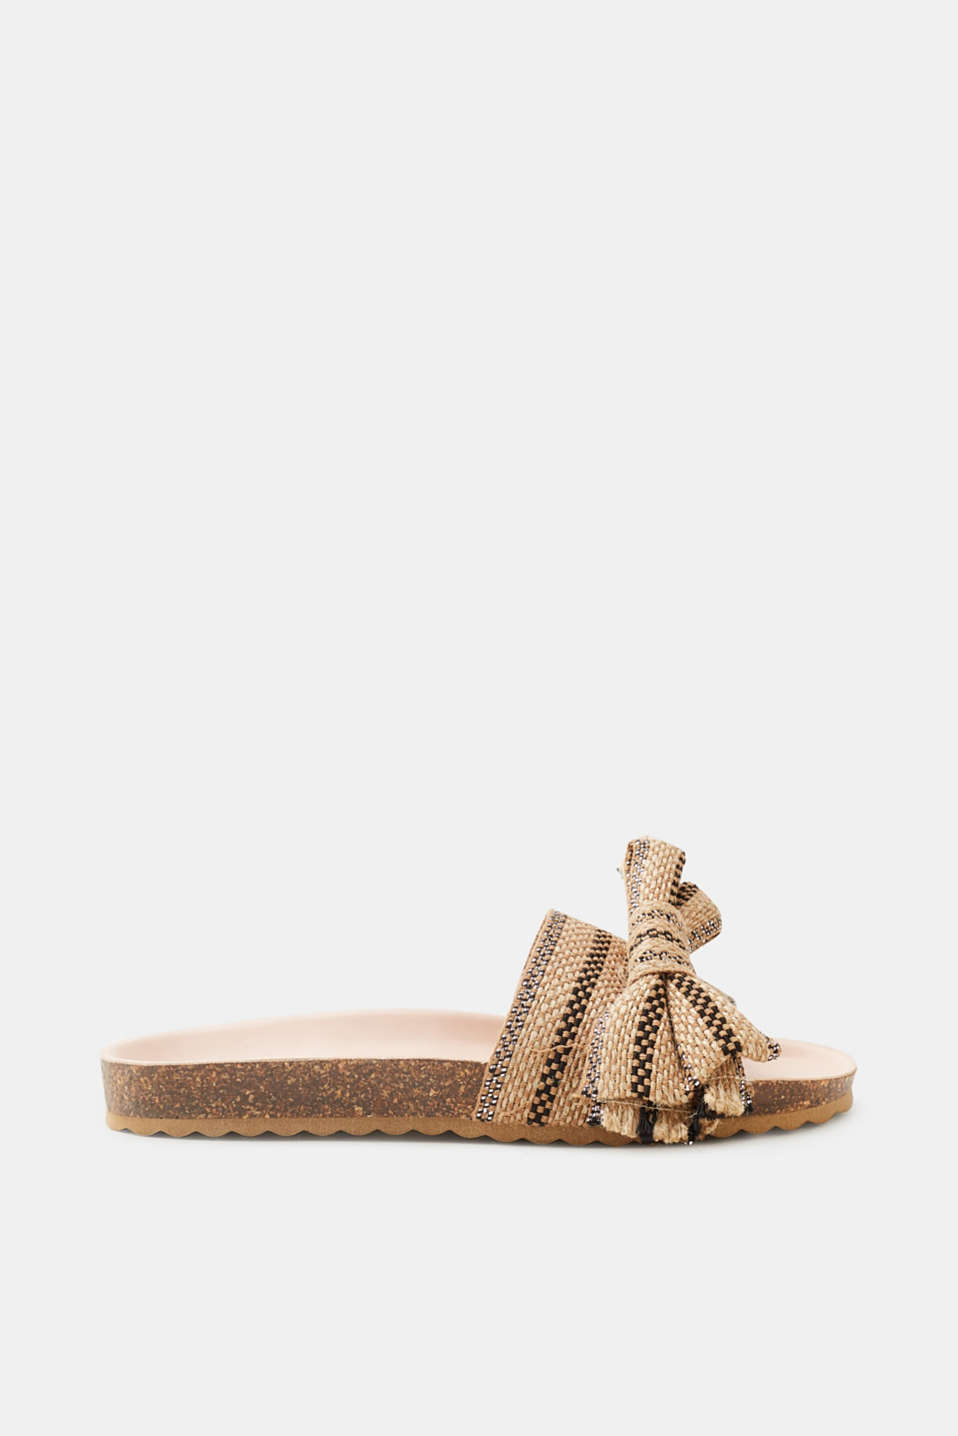 Esprit - Mules with a jute trim and glitter effect